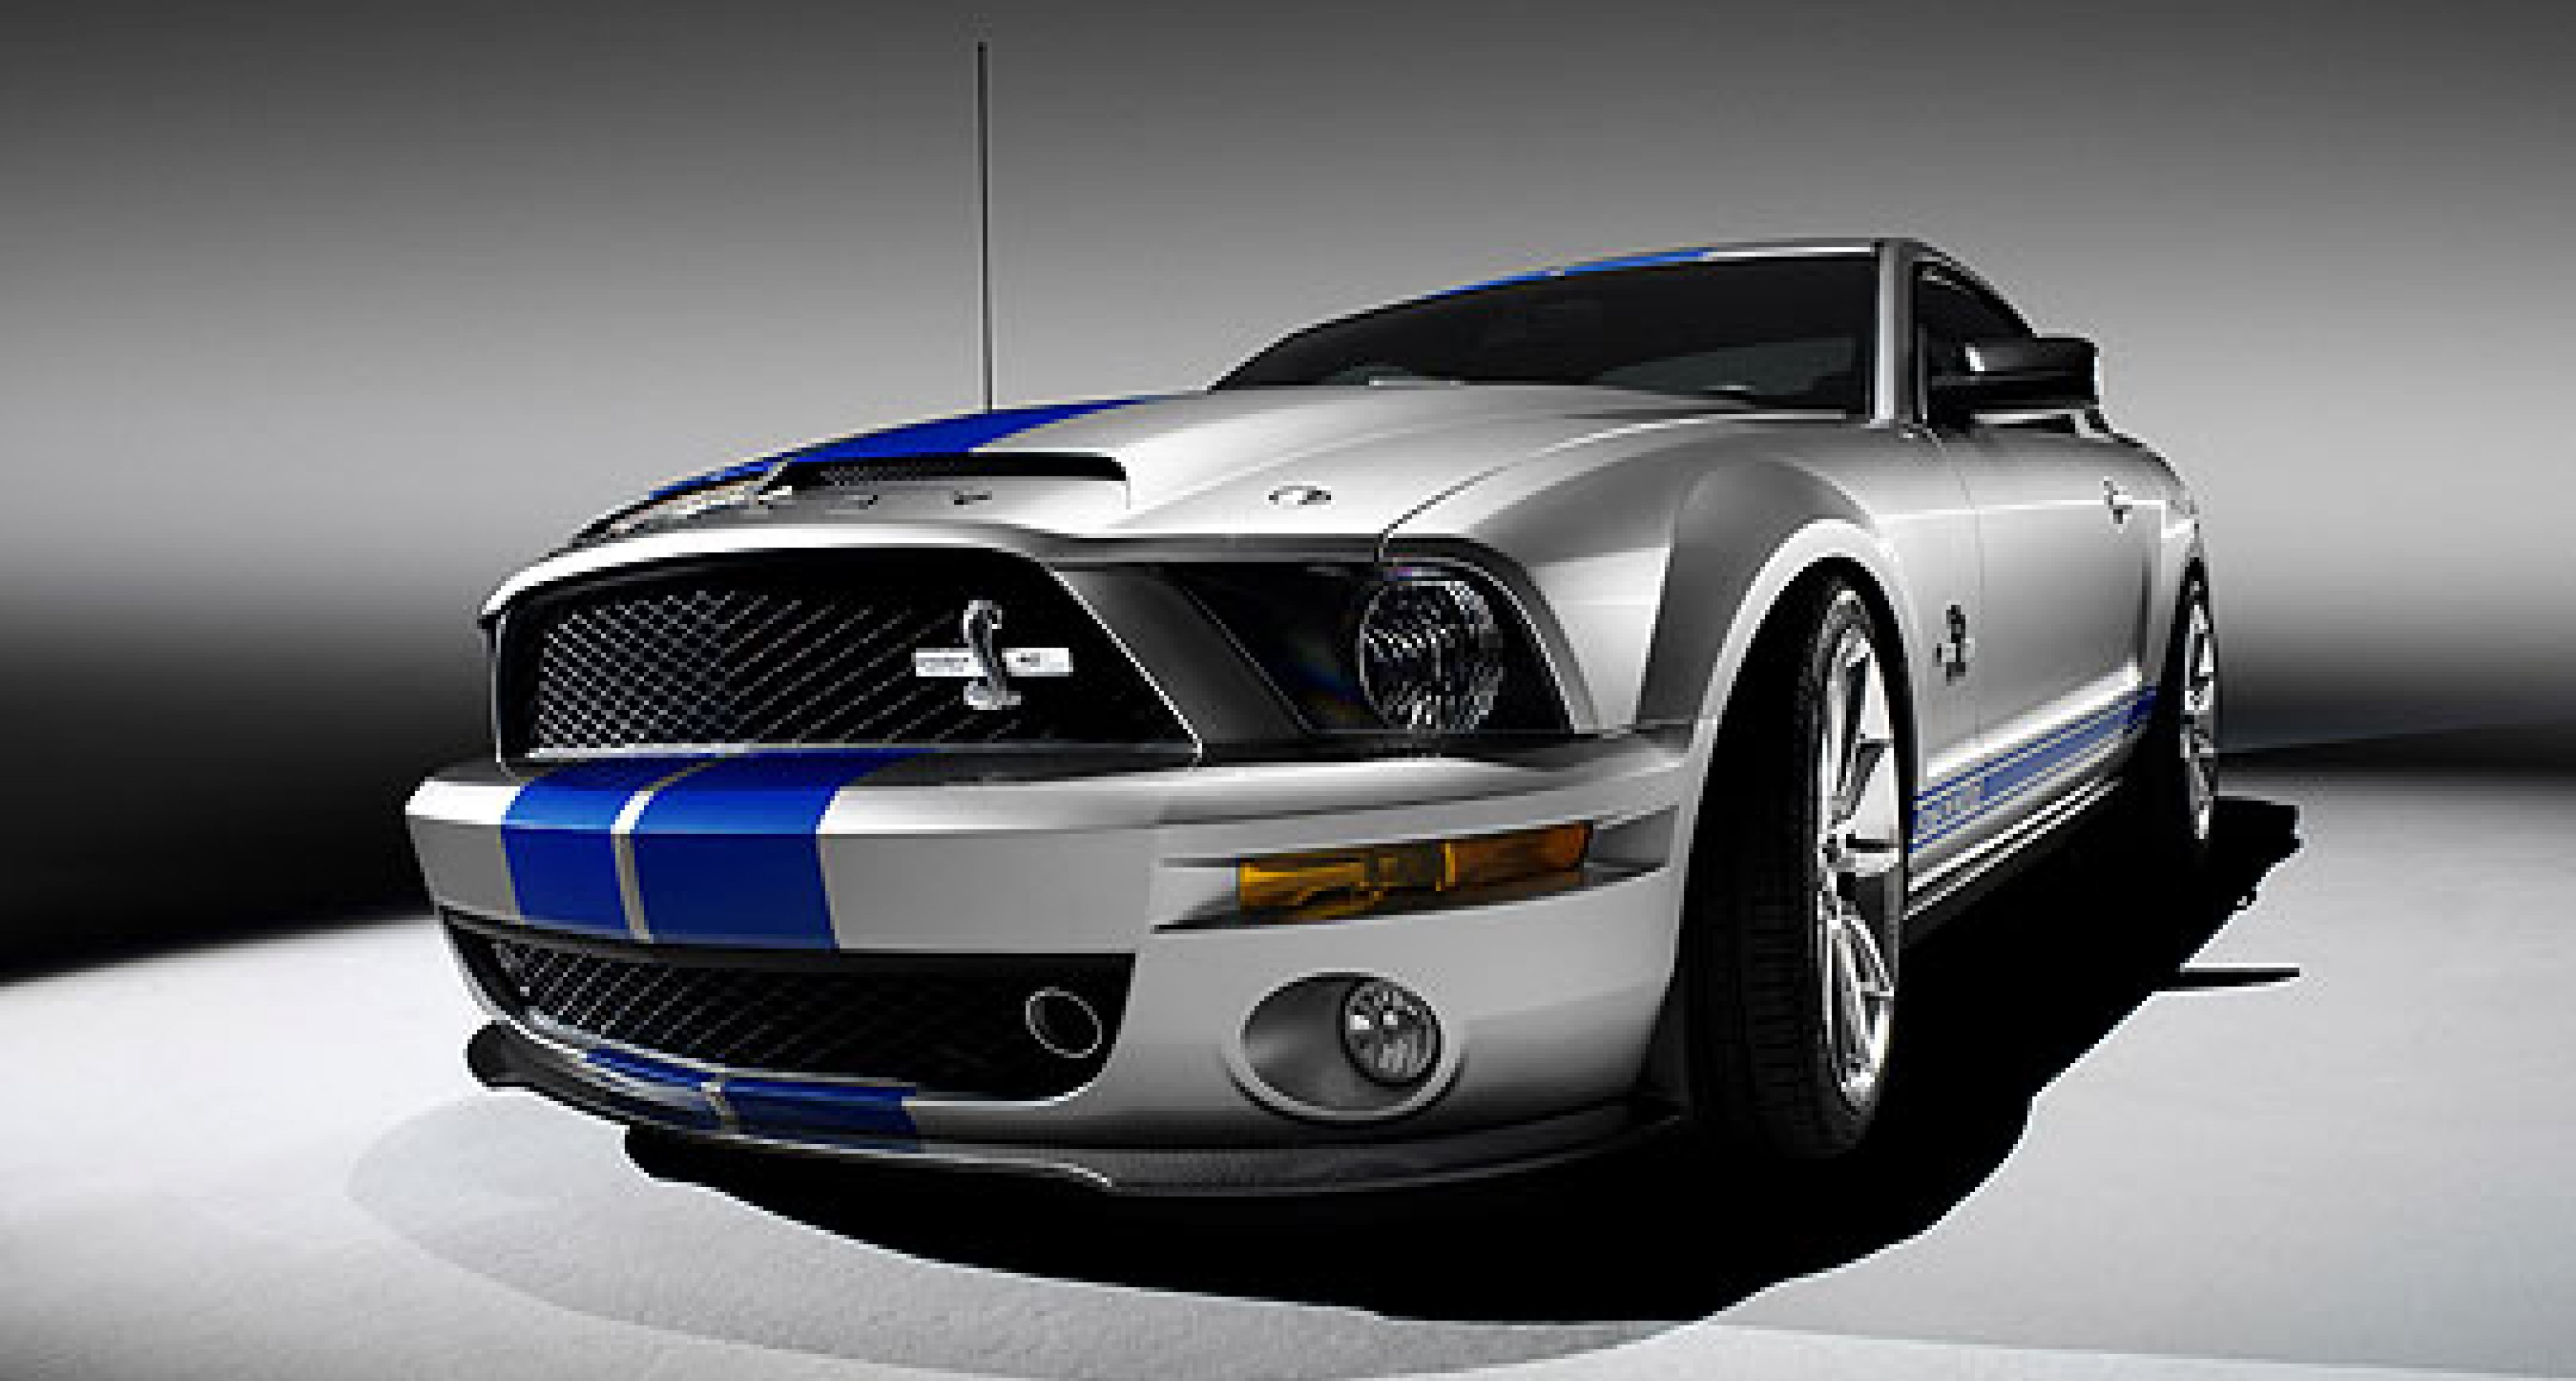 Return of the King - The Ford Shelby GT500KR